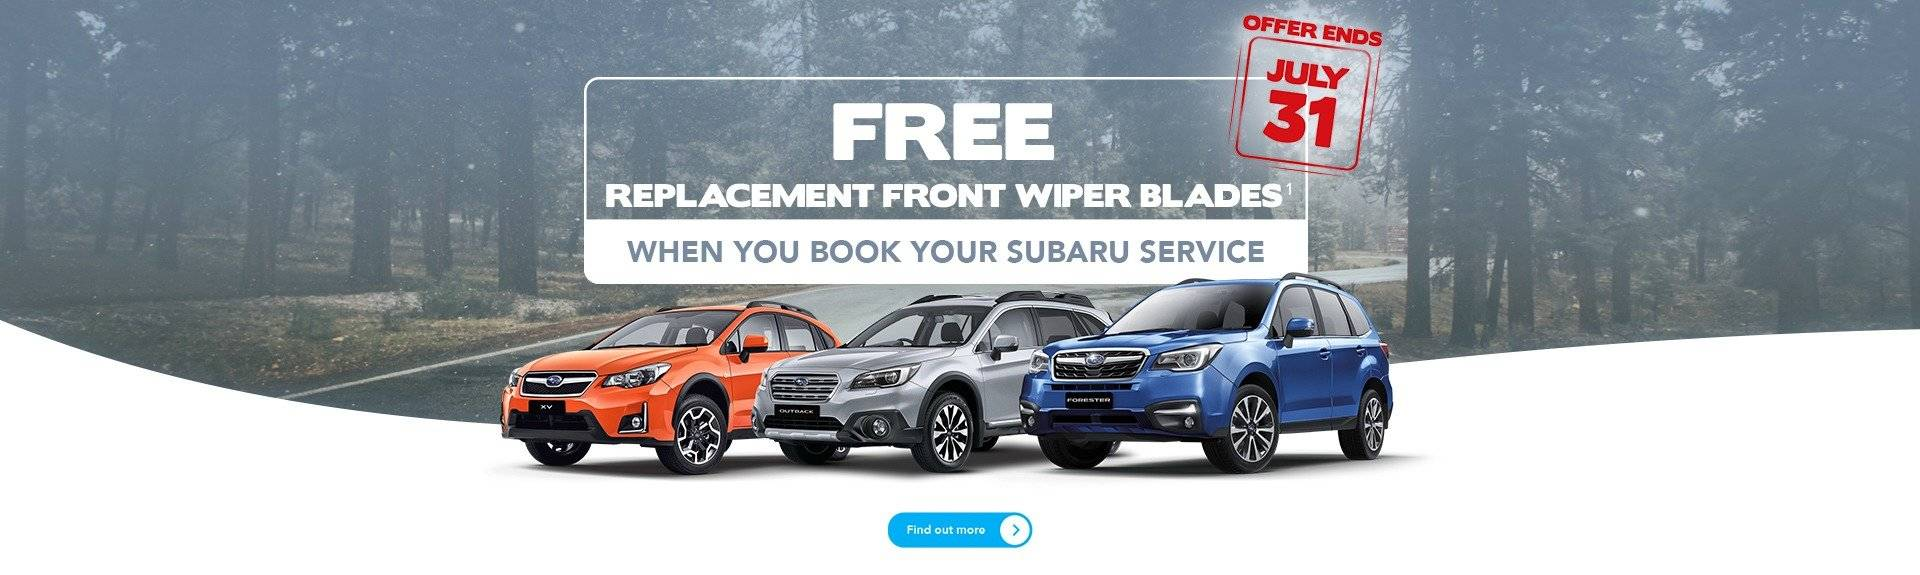 Subaru Melbourne Winter Service Offer